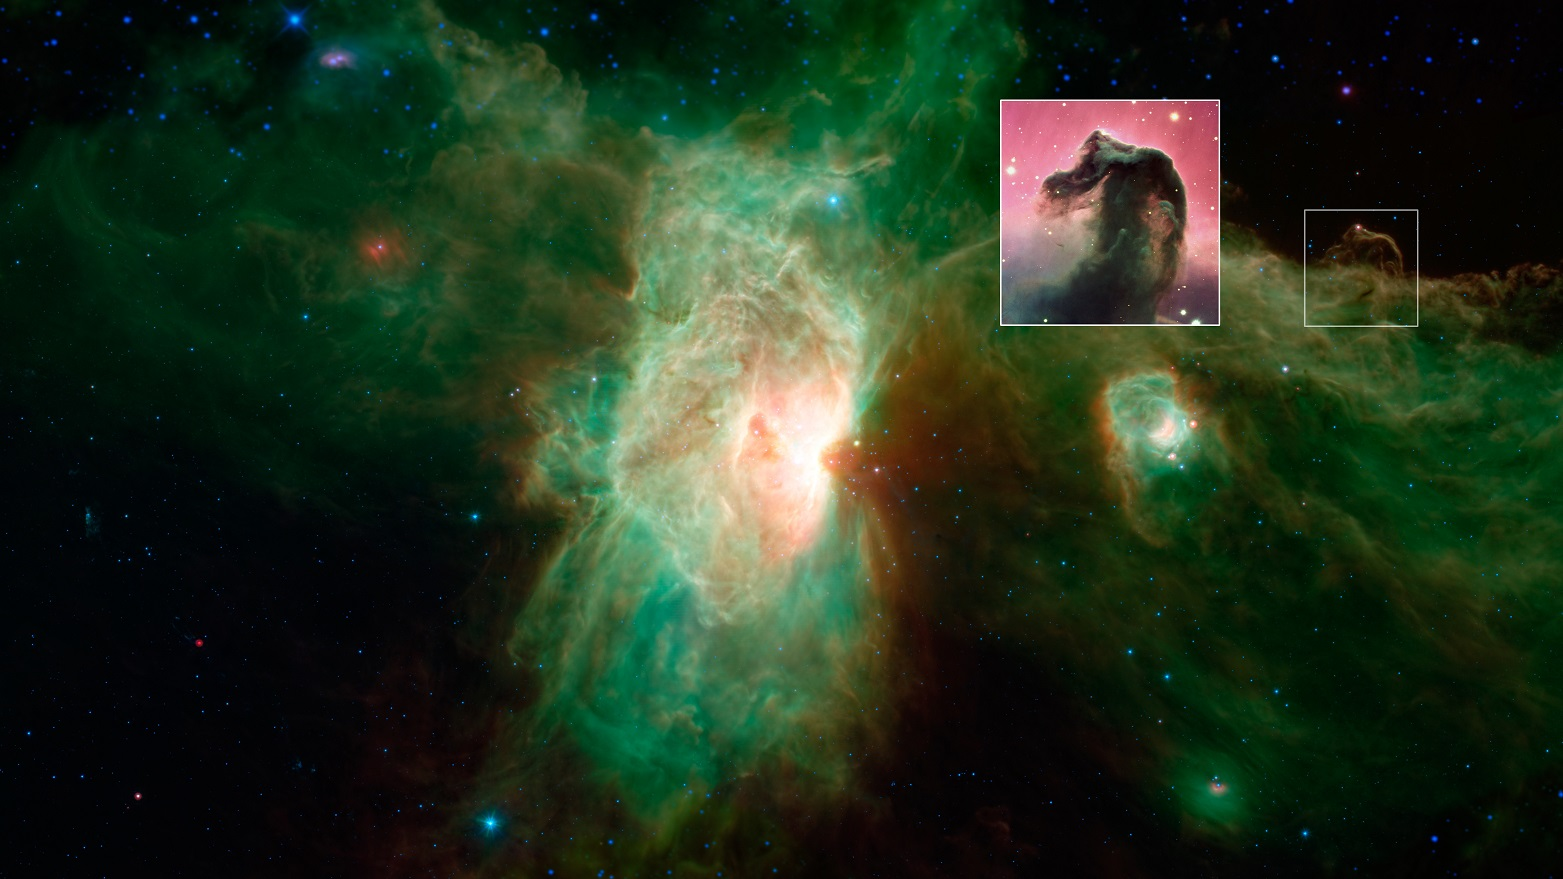 Horsehead Nebula in Infrared Light